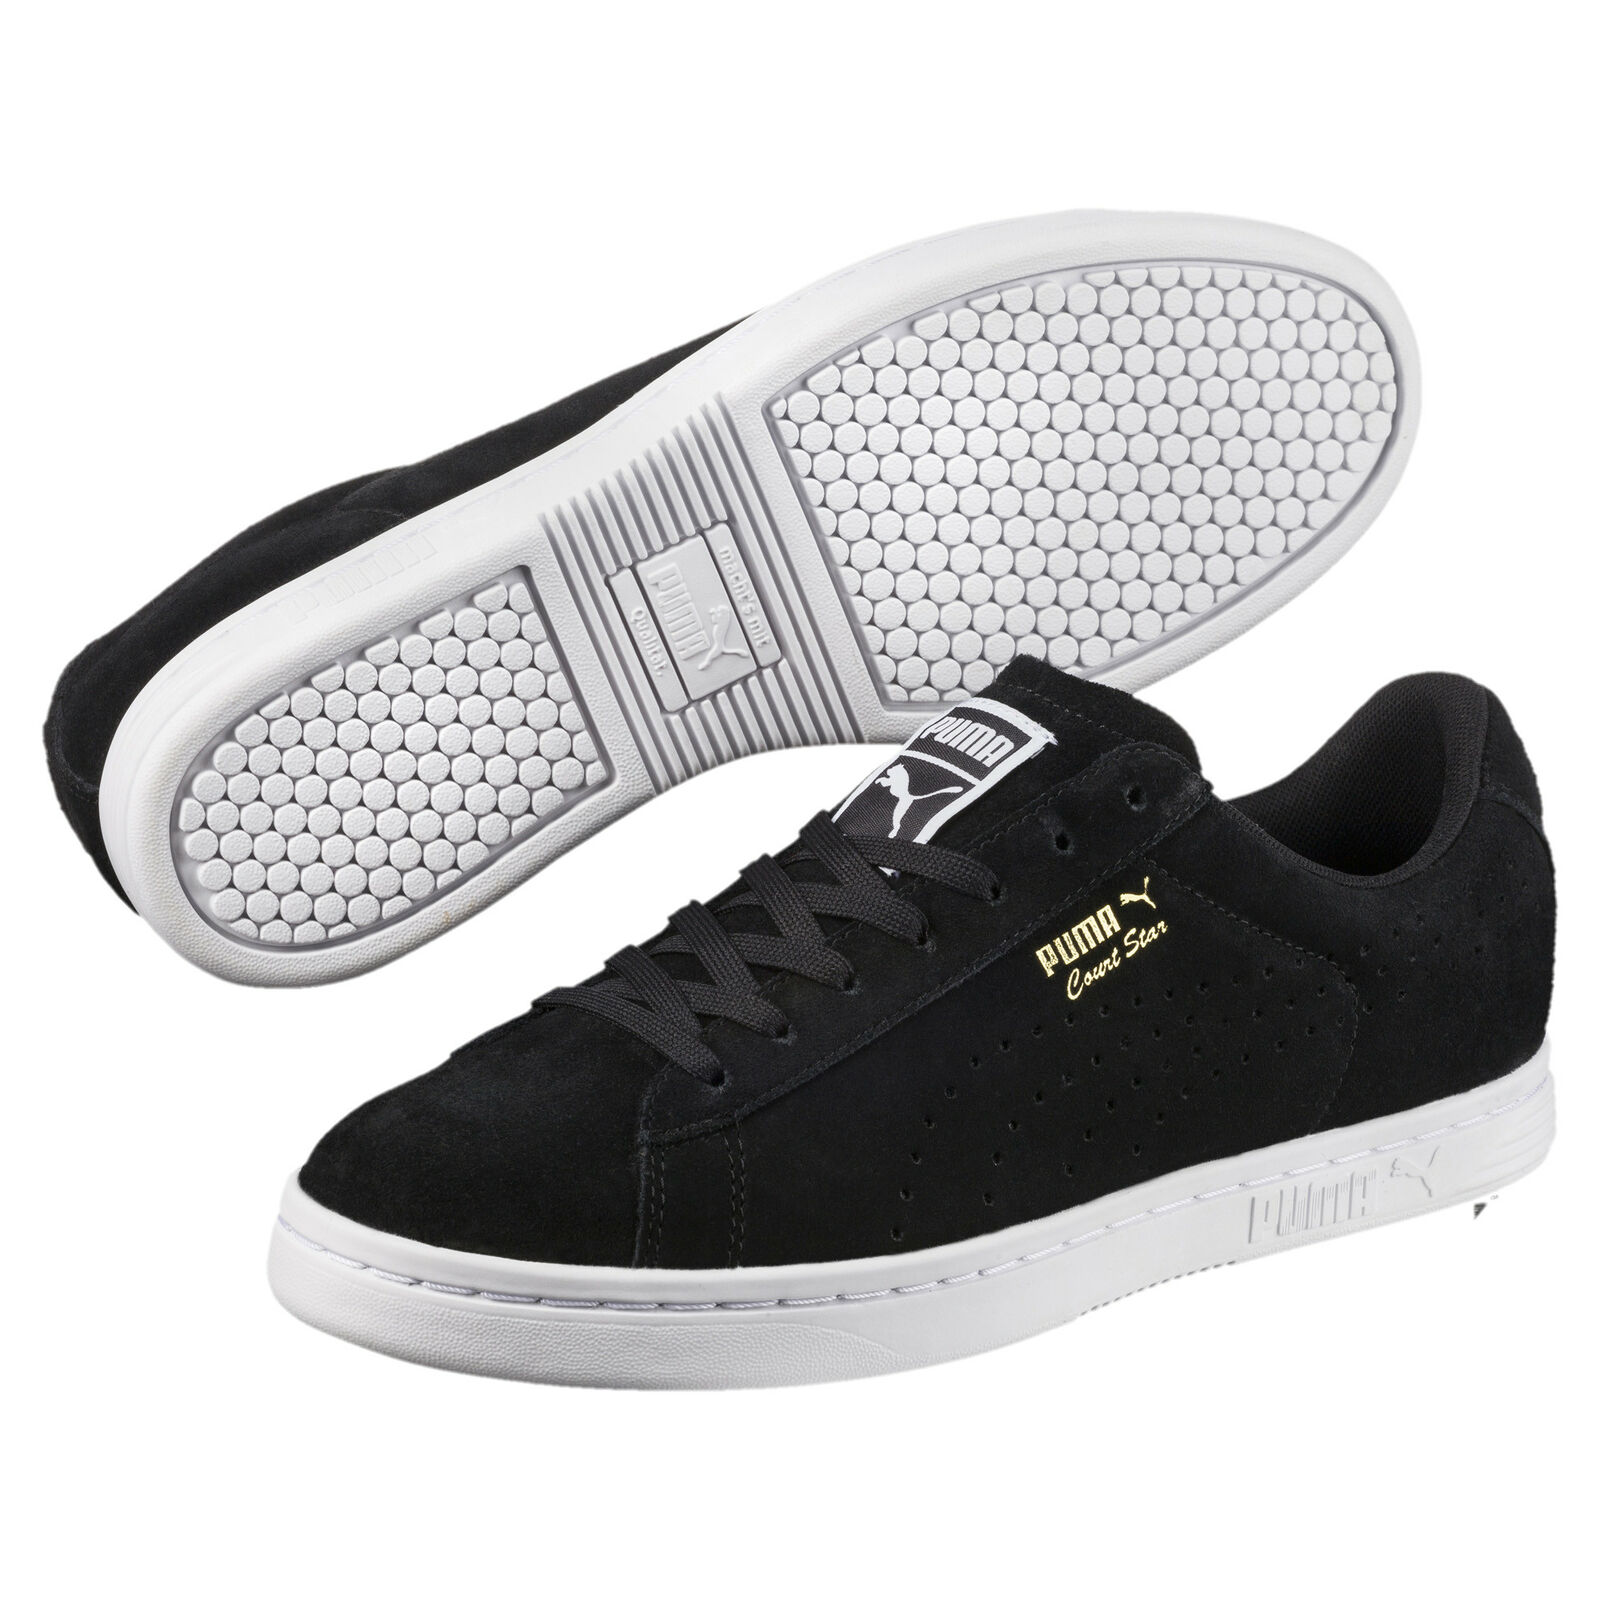 PUMA Unisex Court Star Suede Sneakers